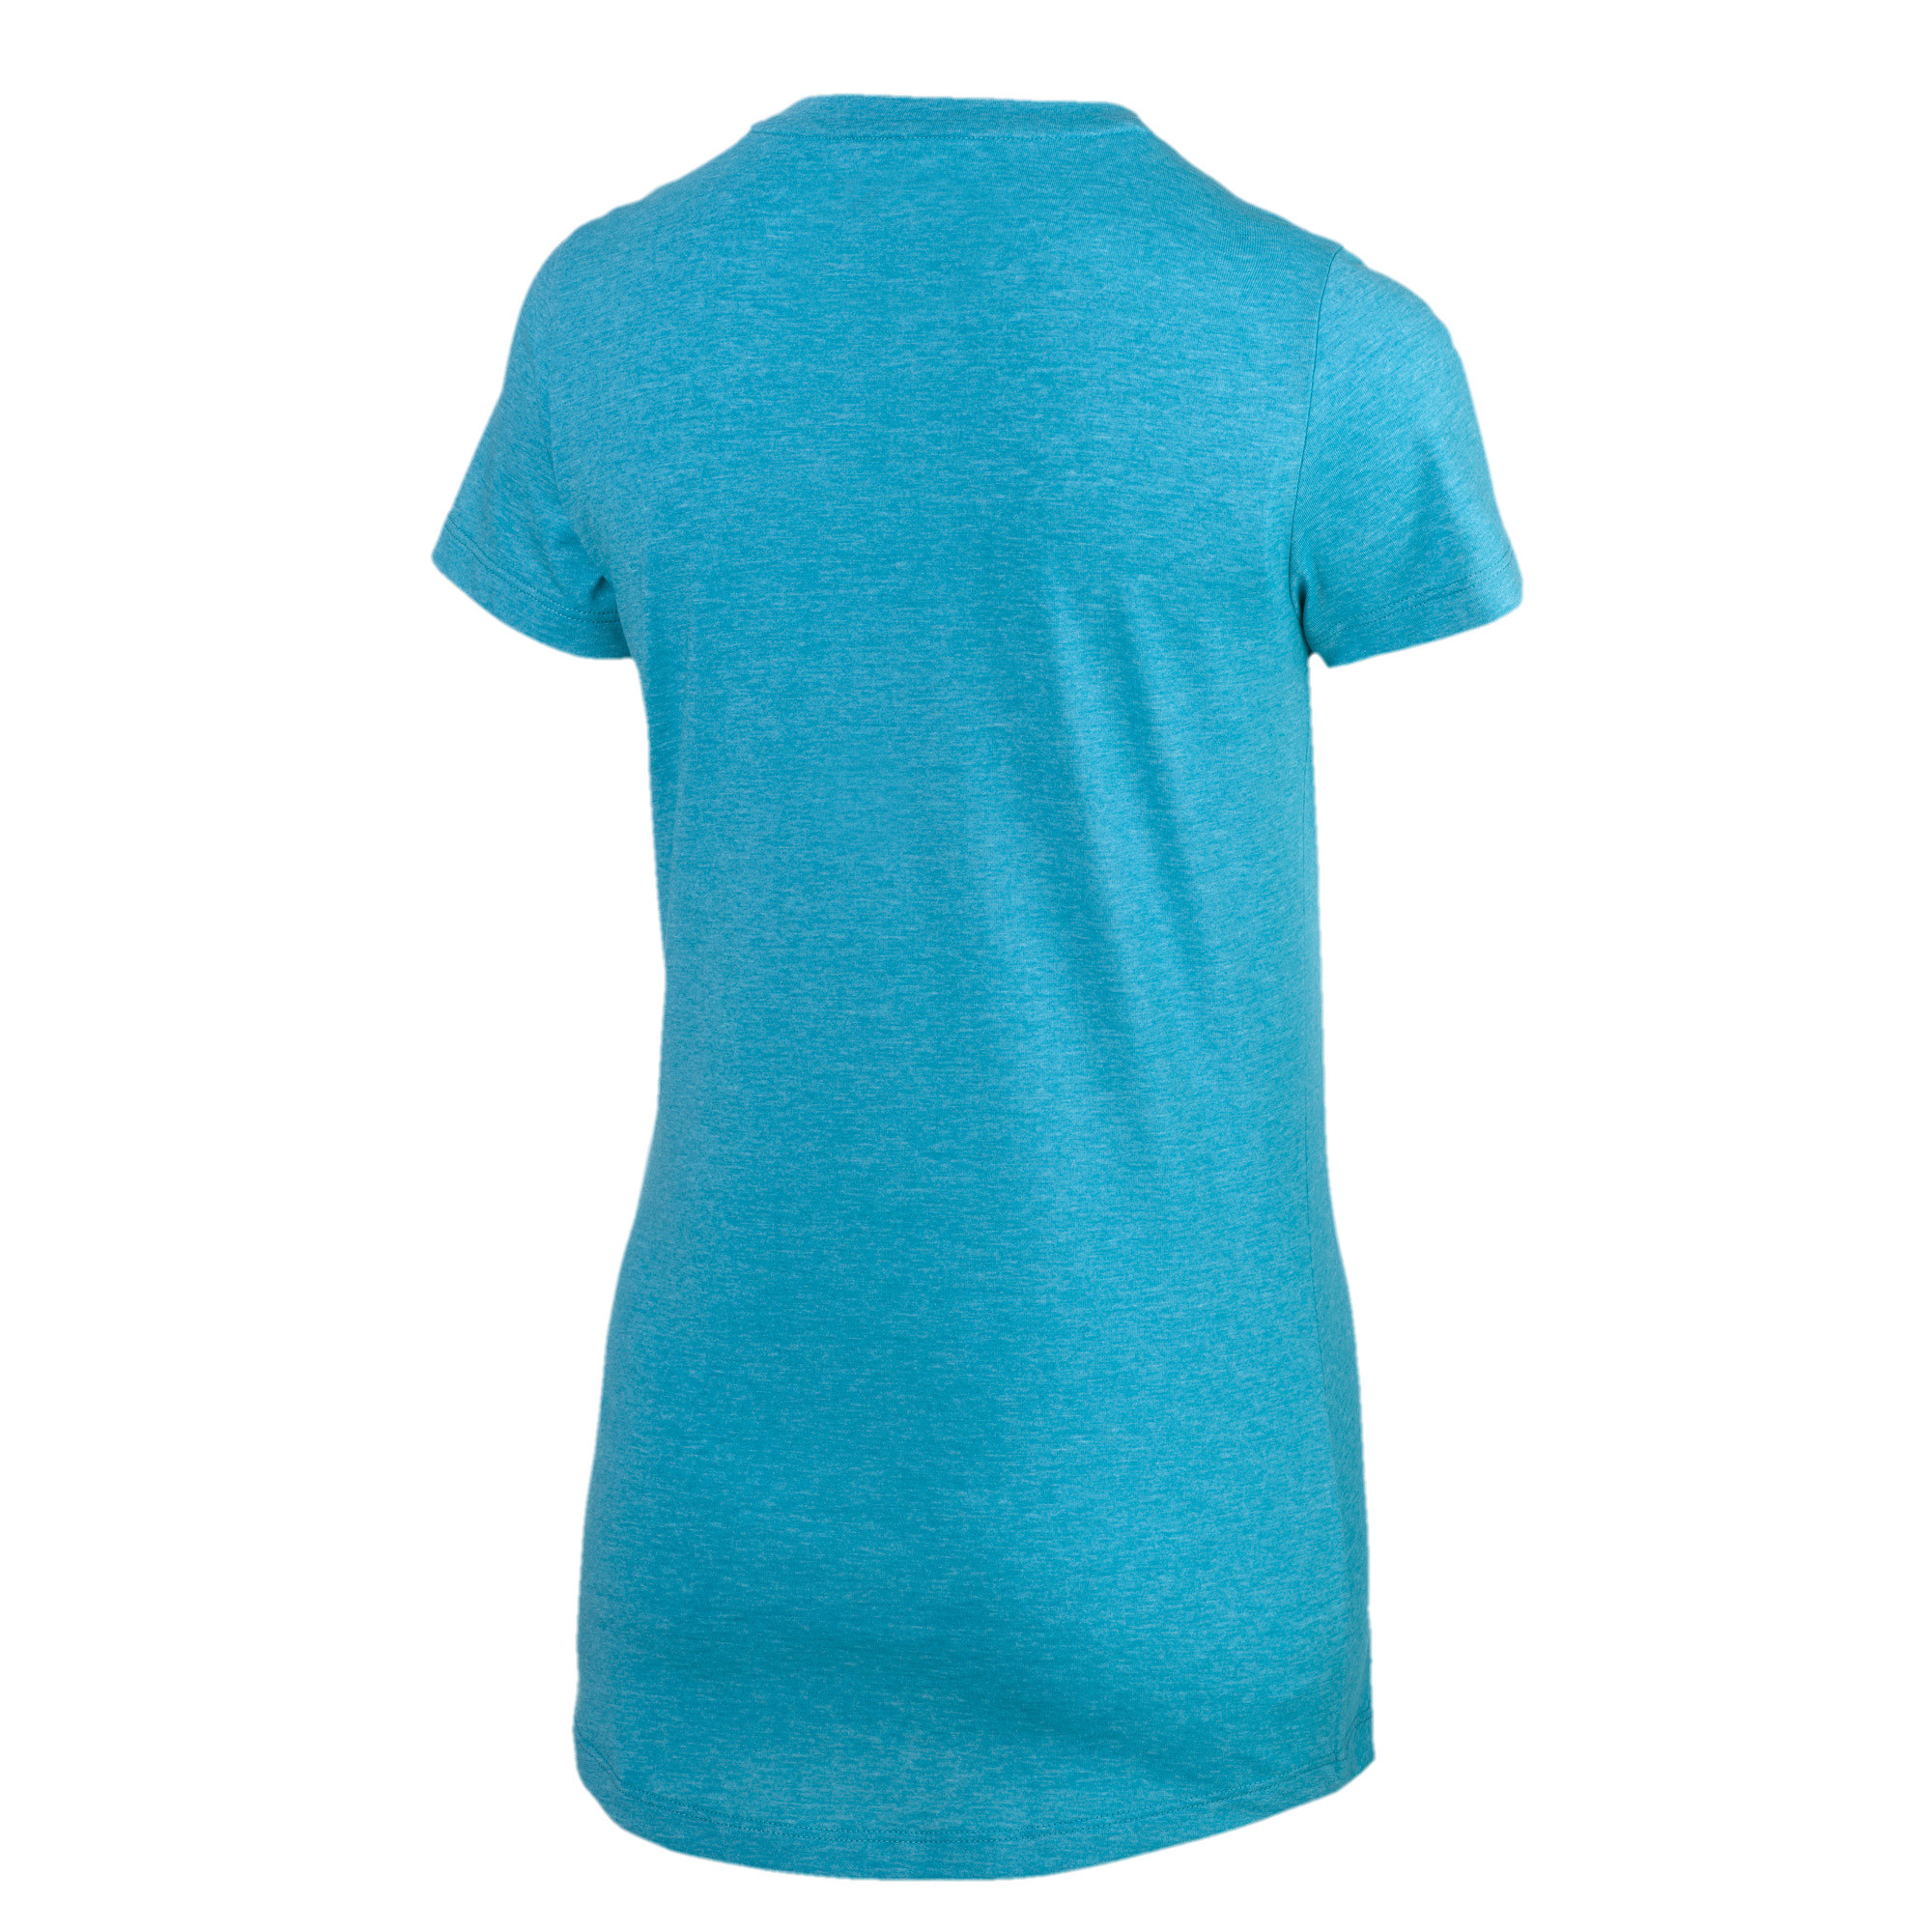 PUMA-Essentials-Women-039-s-Heather-Tee-Women-Tee-Basics thumbnail 16